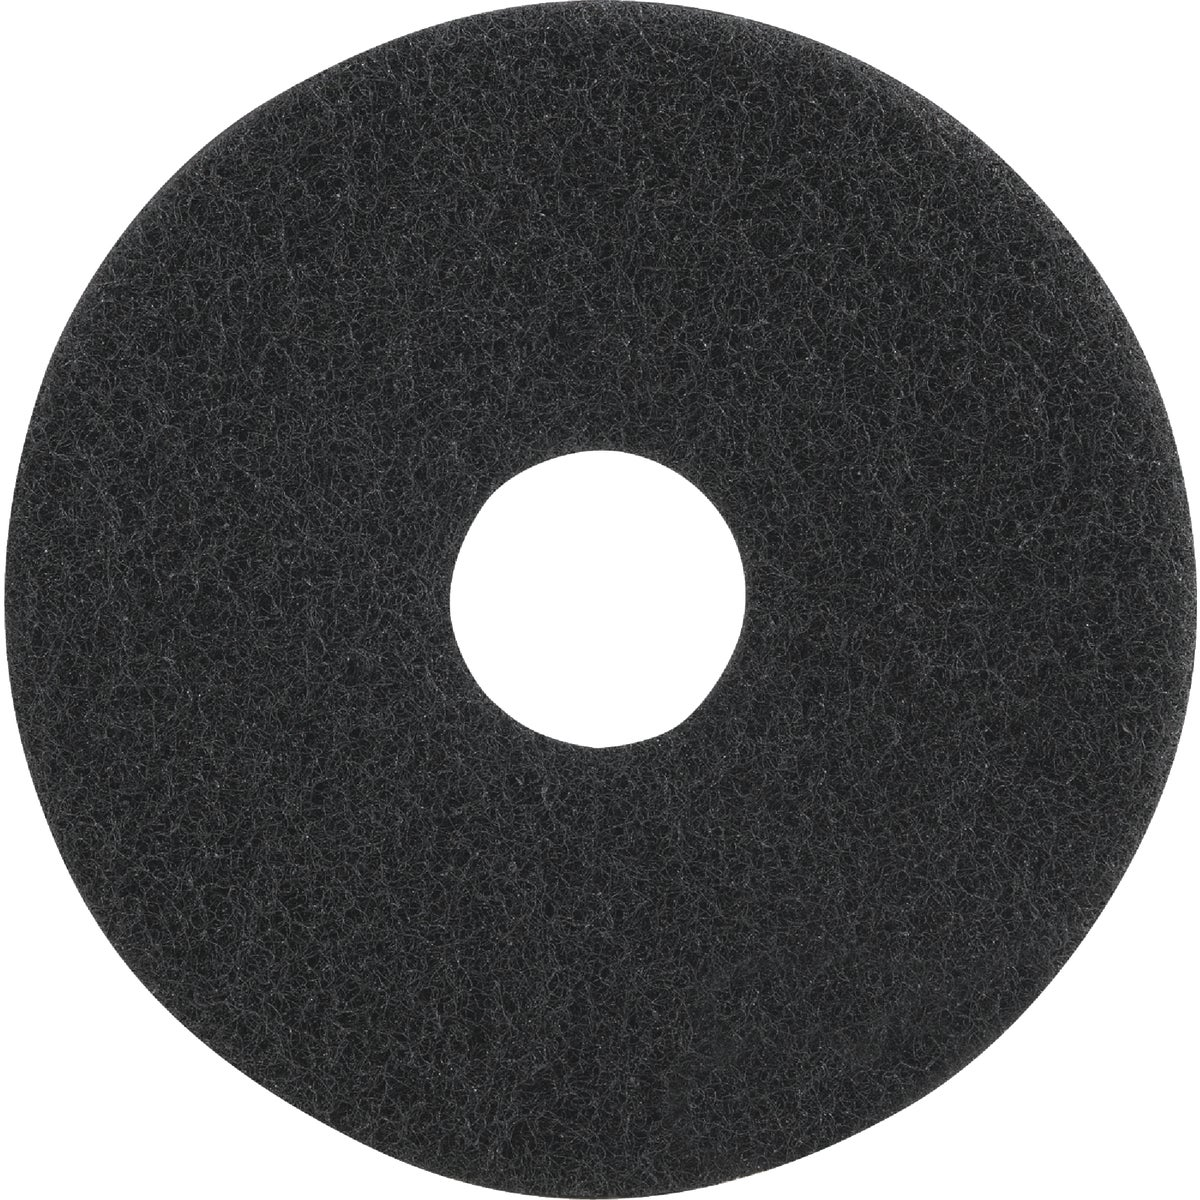 "13"" BLACK STRIPPING PAD - TKL13B by Lundmark Wax Co"